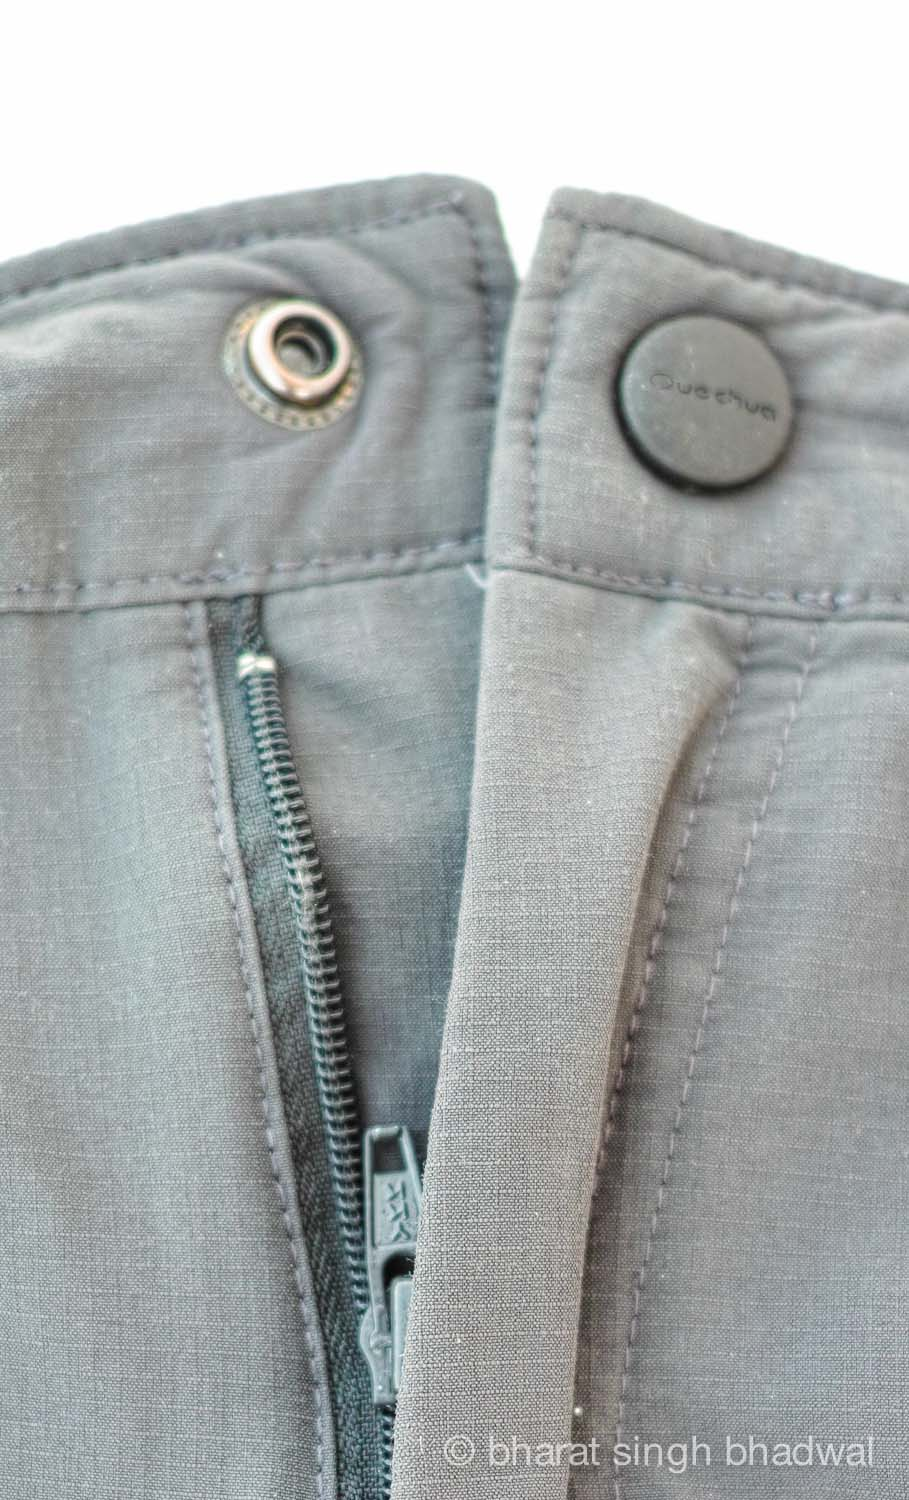 Front snap with subtle branding and YKK zipper. The ripstop fabric (small squares) is evident